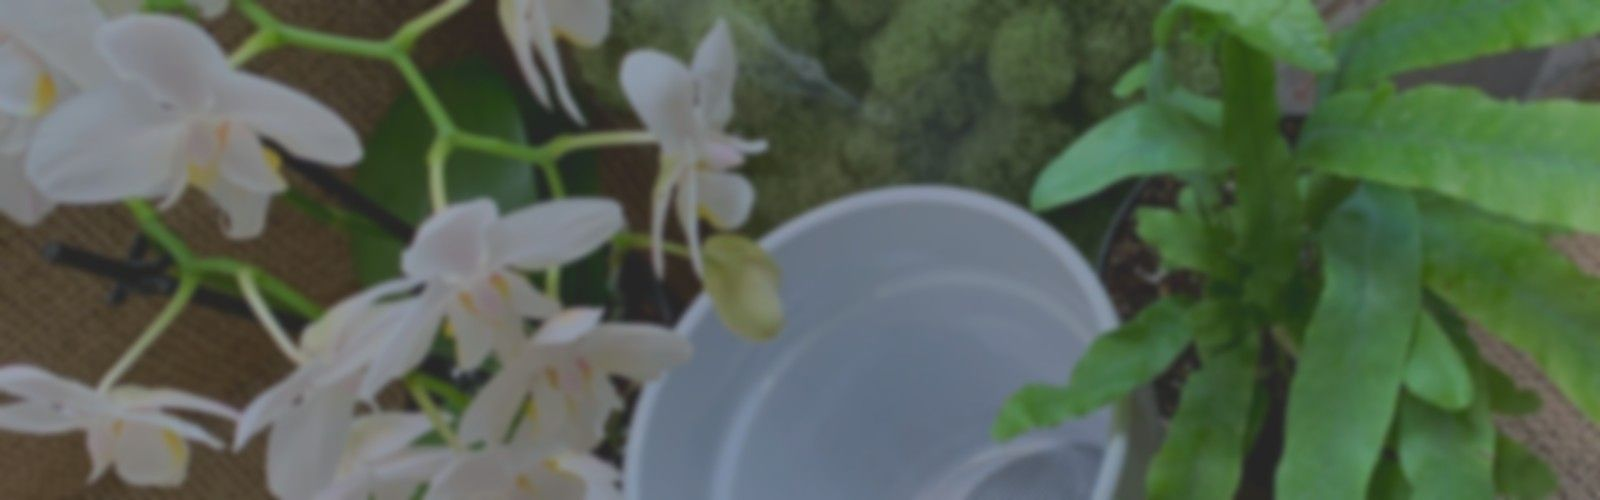 assortment of plants, orchid, fern, moss, and pottery